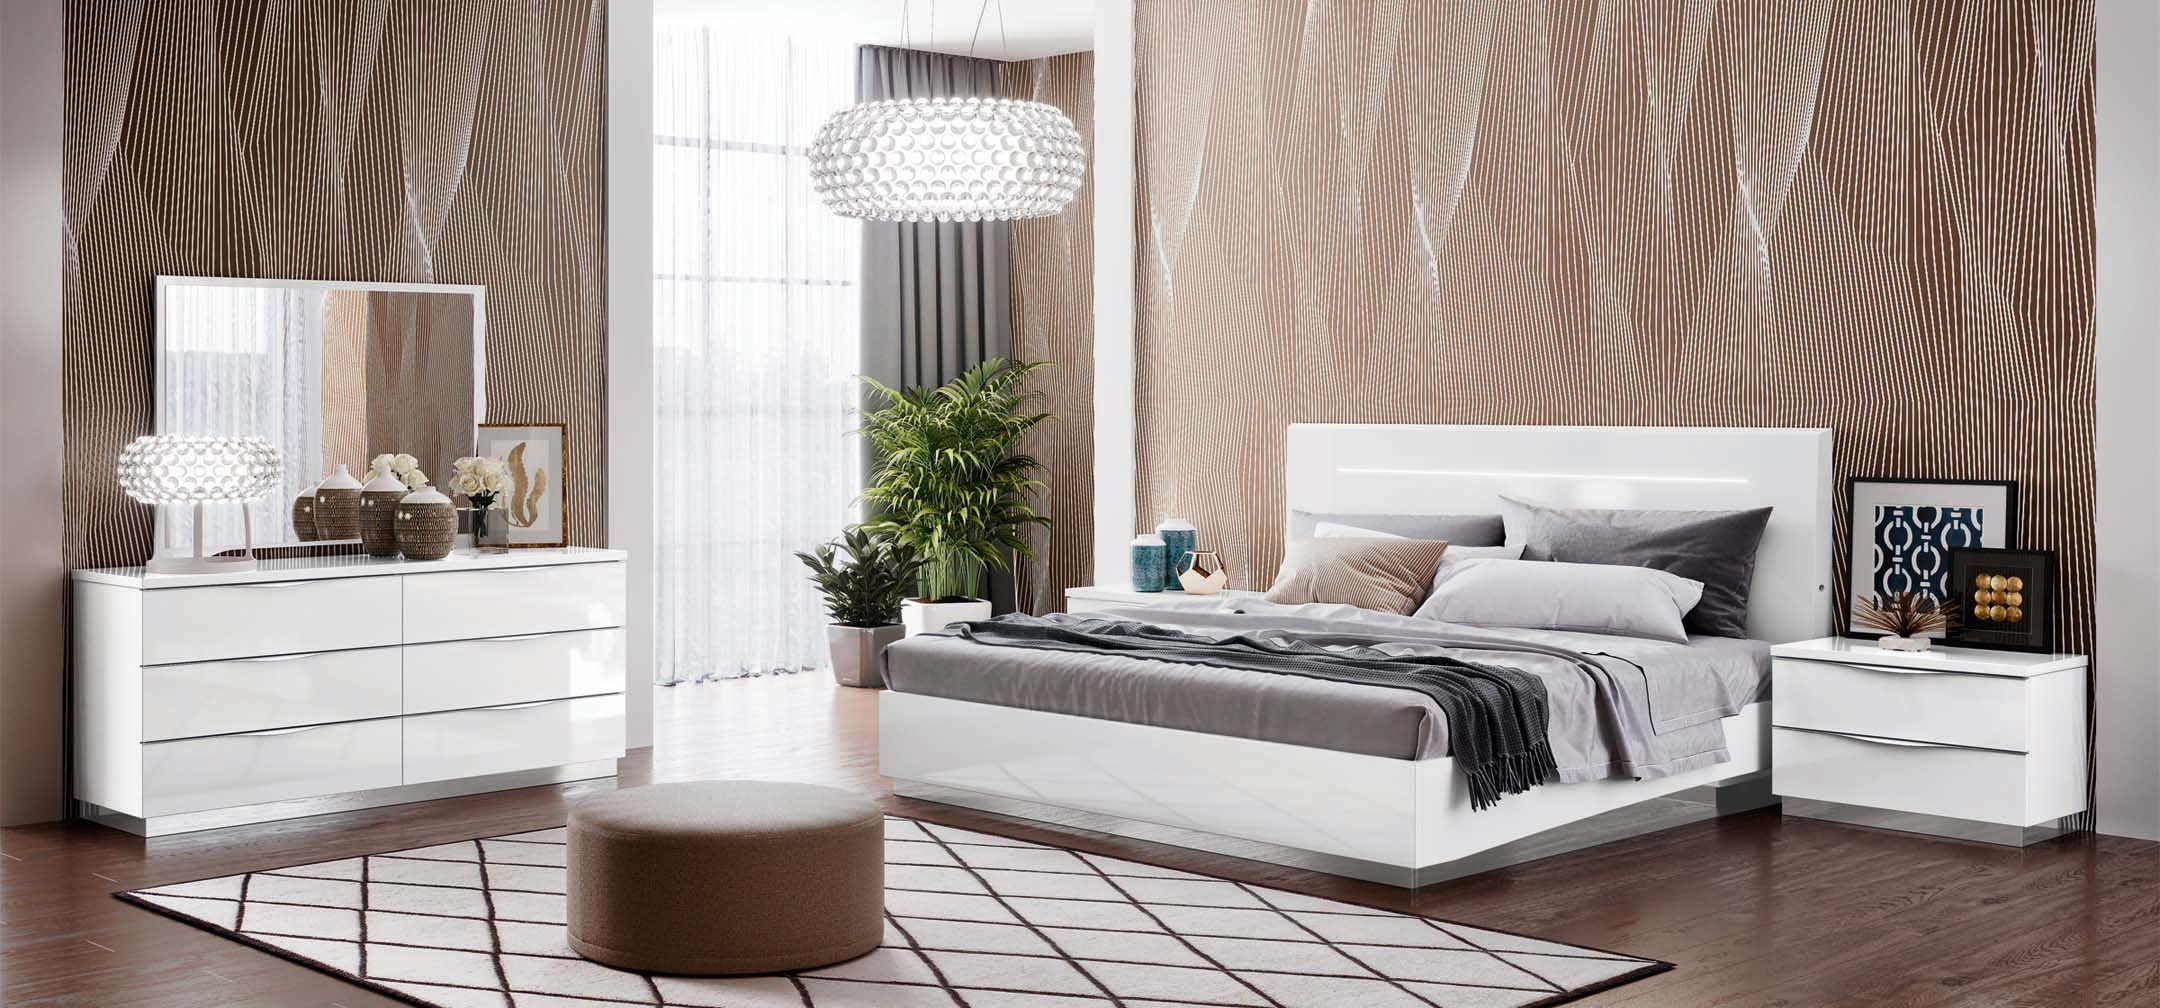 Onda Legno White Bedroom Set By Camel Group Nova Interiors